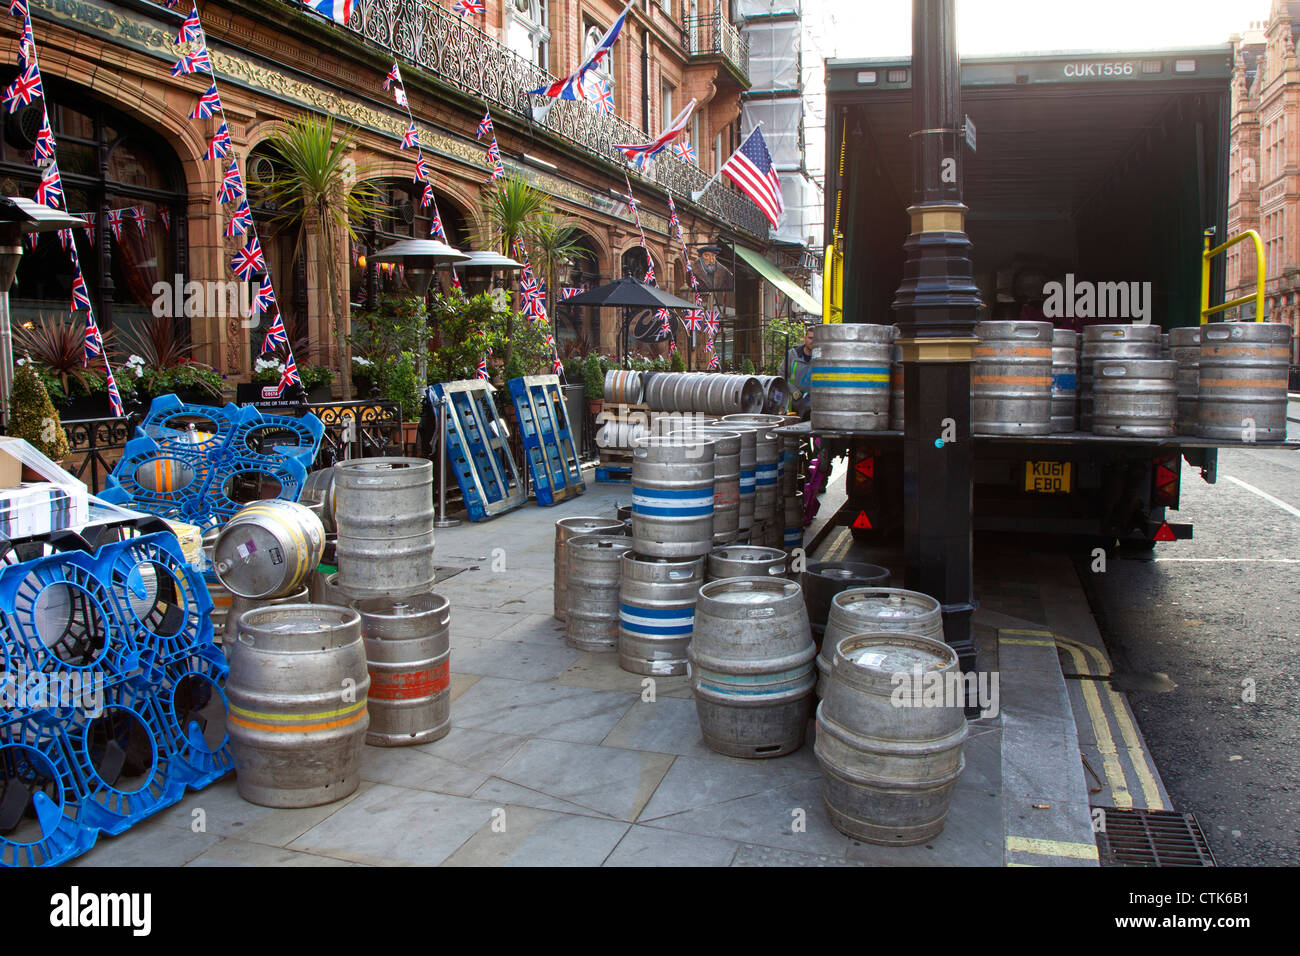 Kegs of Beer Being Delivered to London Pub - Stock Image